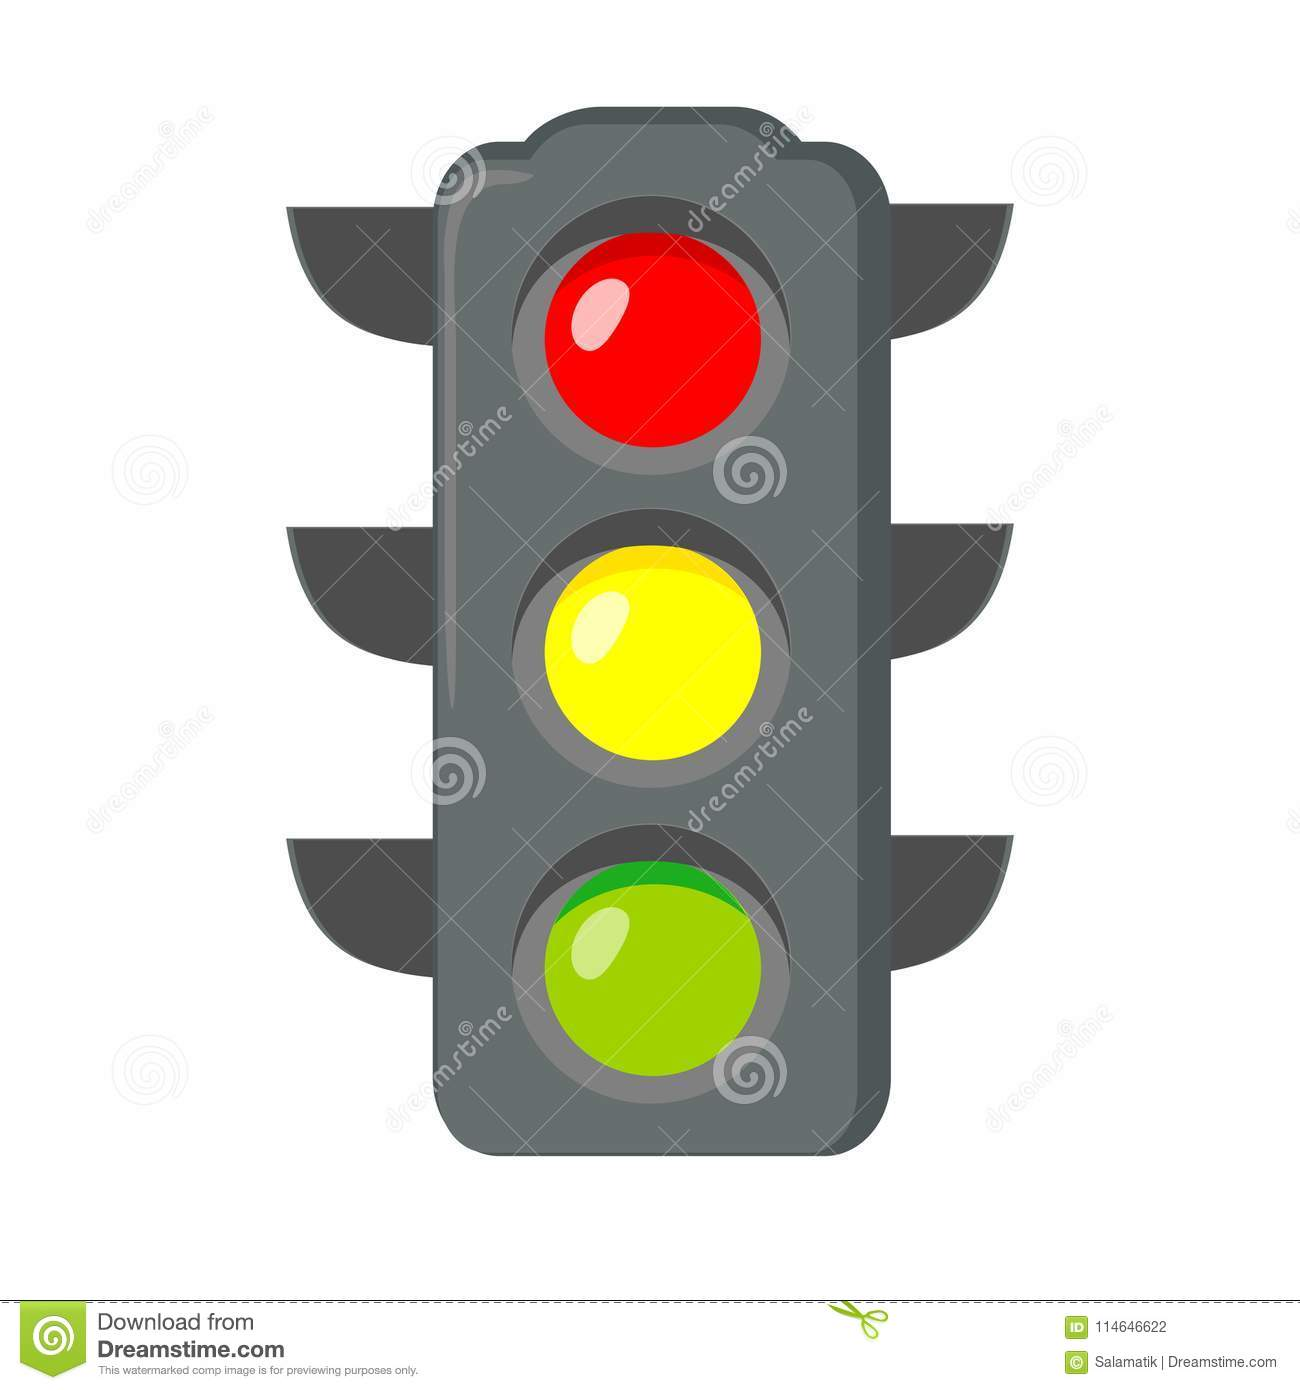 Icon Cartoon Traffic Light. Signals With Red Light Above Yellow And ... for Traffic Light Green Icon  181plt